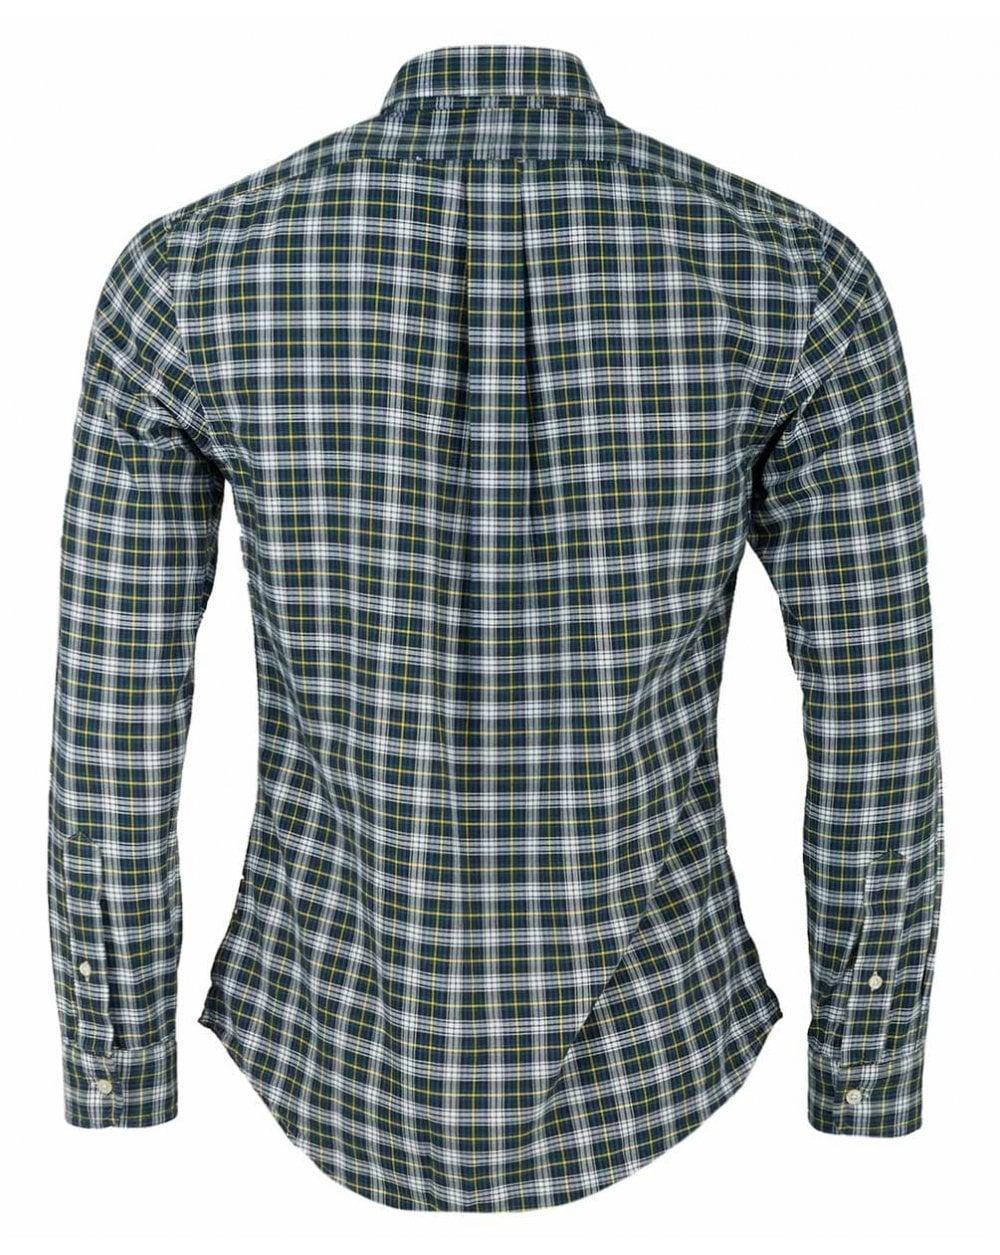 aae7ca641 Lyst - Polo Ralph Lauren Small Multi Check Slim Fit Shirt in Green for Men